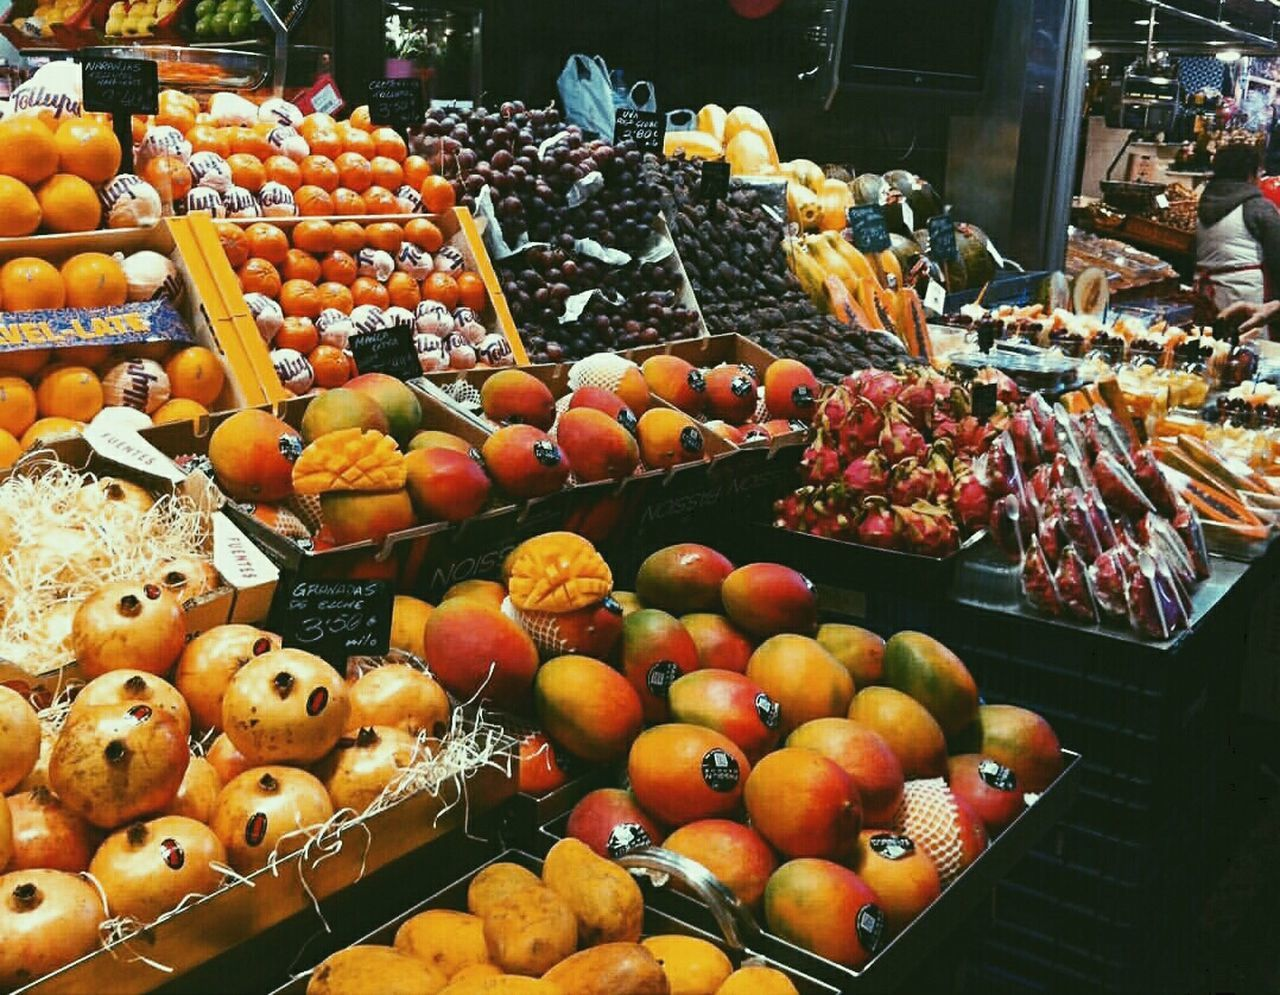 food, food and drink, choice, fruit, retail, for sale, variation, abundance, large group of objects, market, freshness, arrangement, market stall, no people, healthy eating, price tag, apple - fruit, day, outdoors